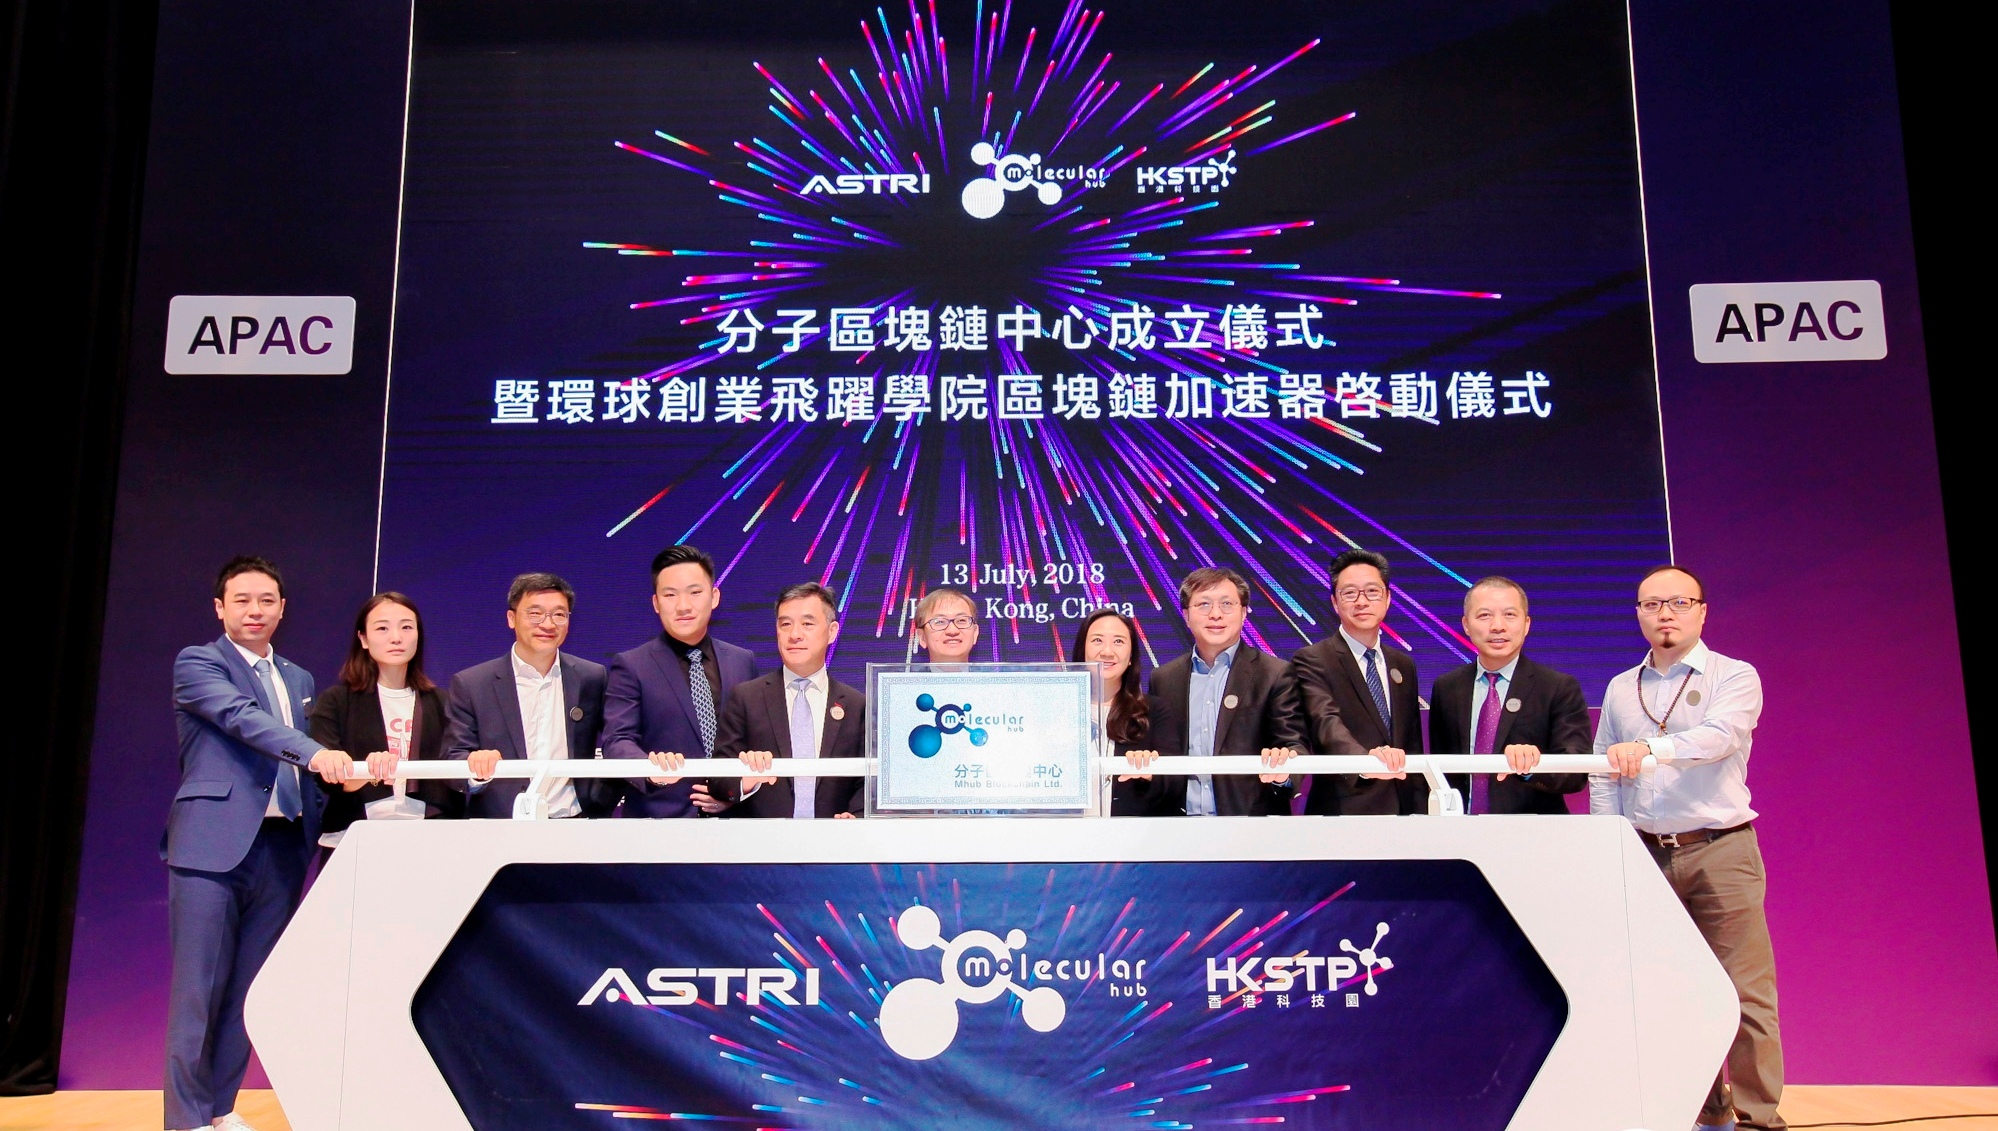 ASTRI partners with HKSTP and Molecular Hub in organising Blockchain Accelerator Programme for start-ups